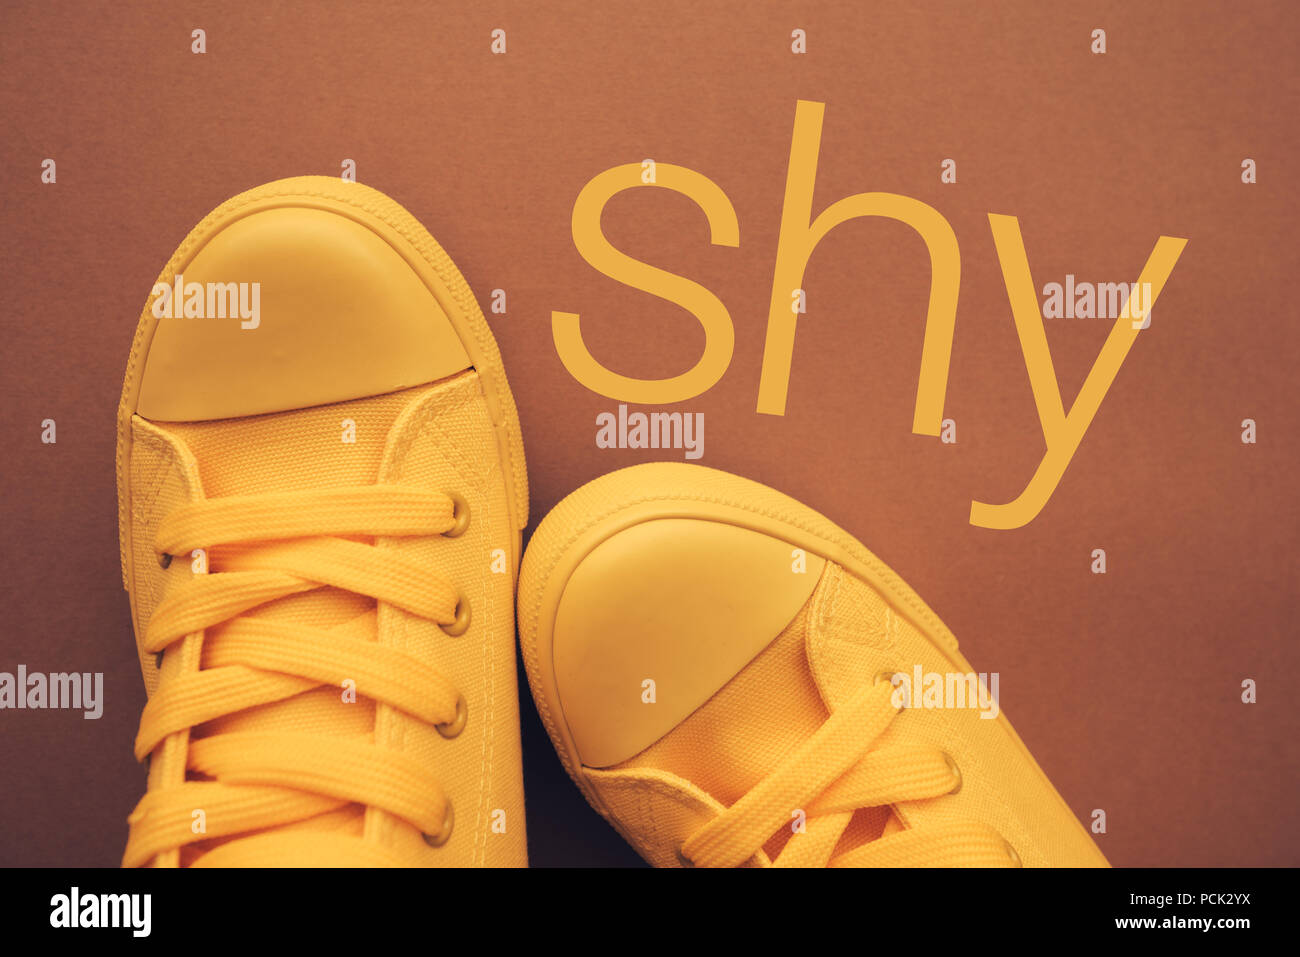 Shy person and shyness, conceptual image with yellow sneakers from above - Stock Image